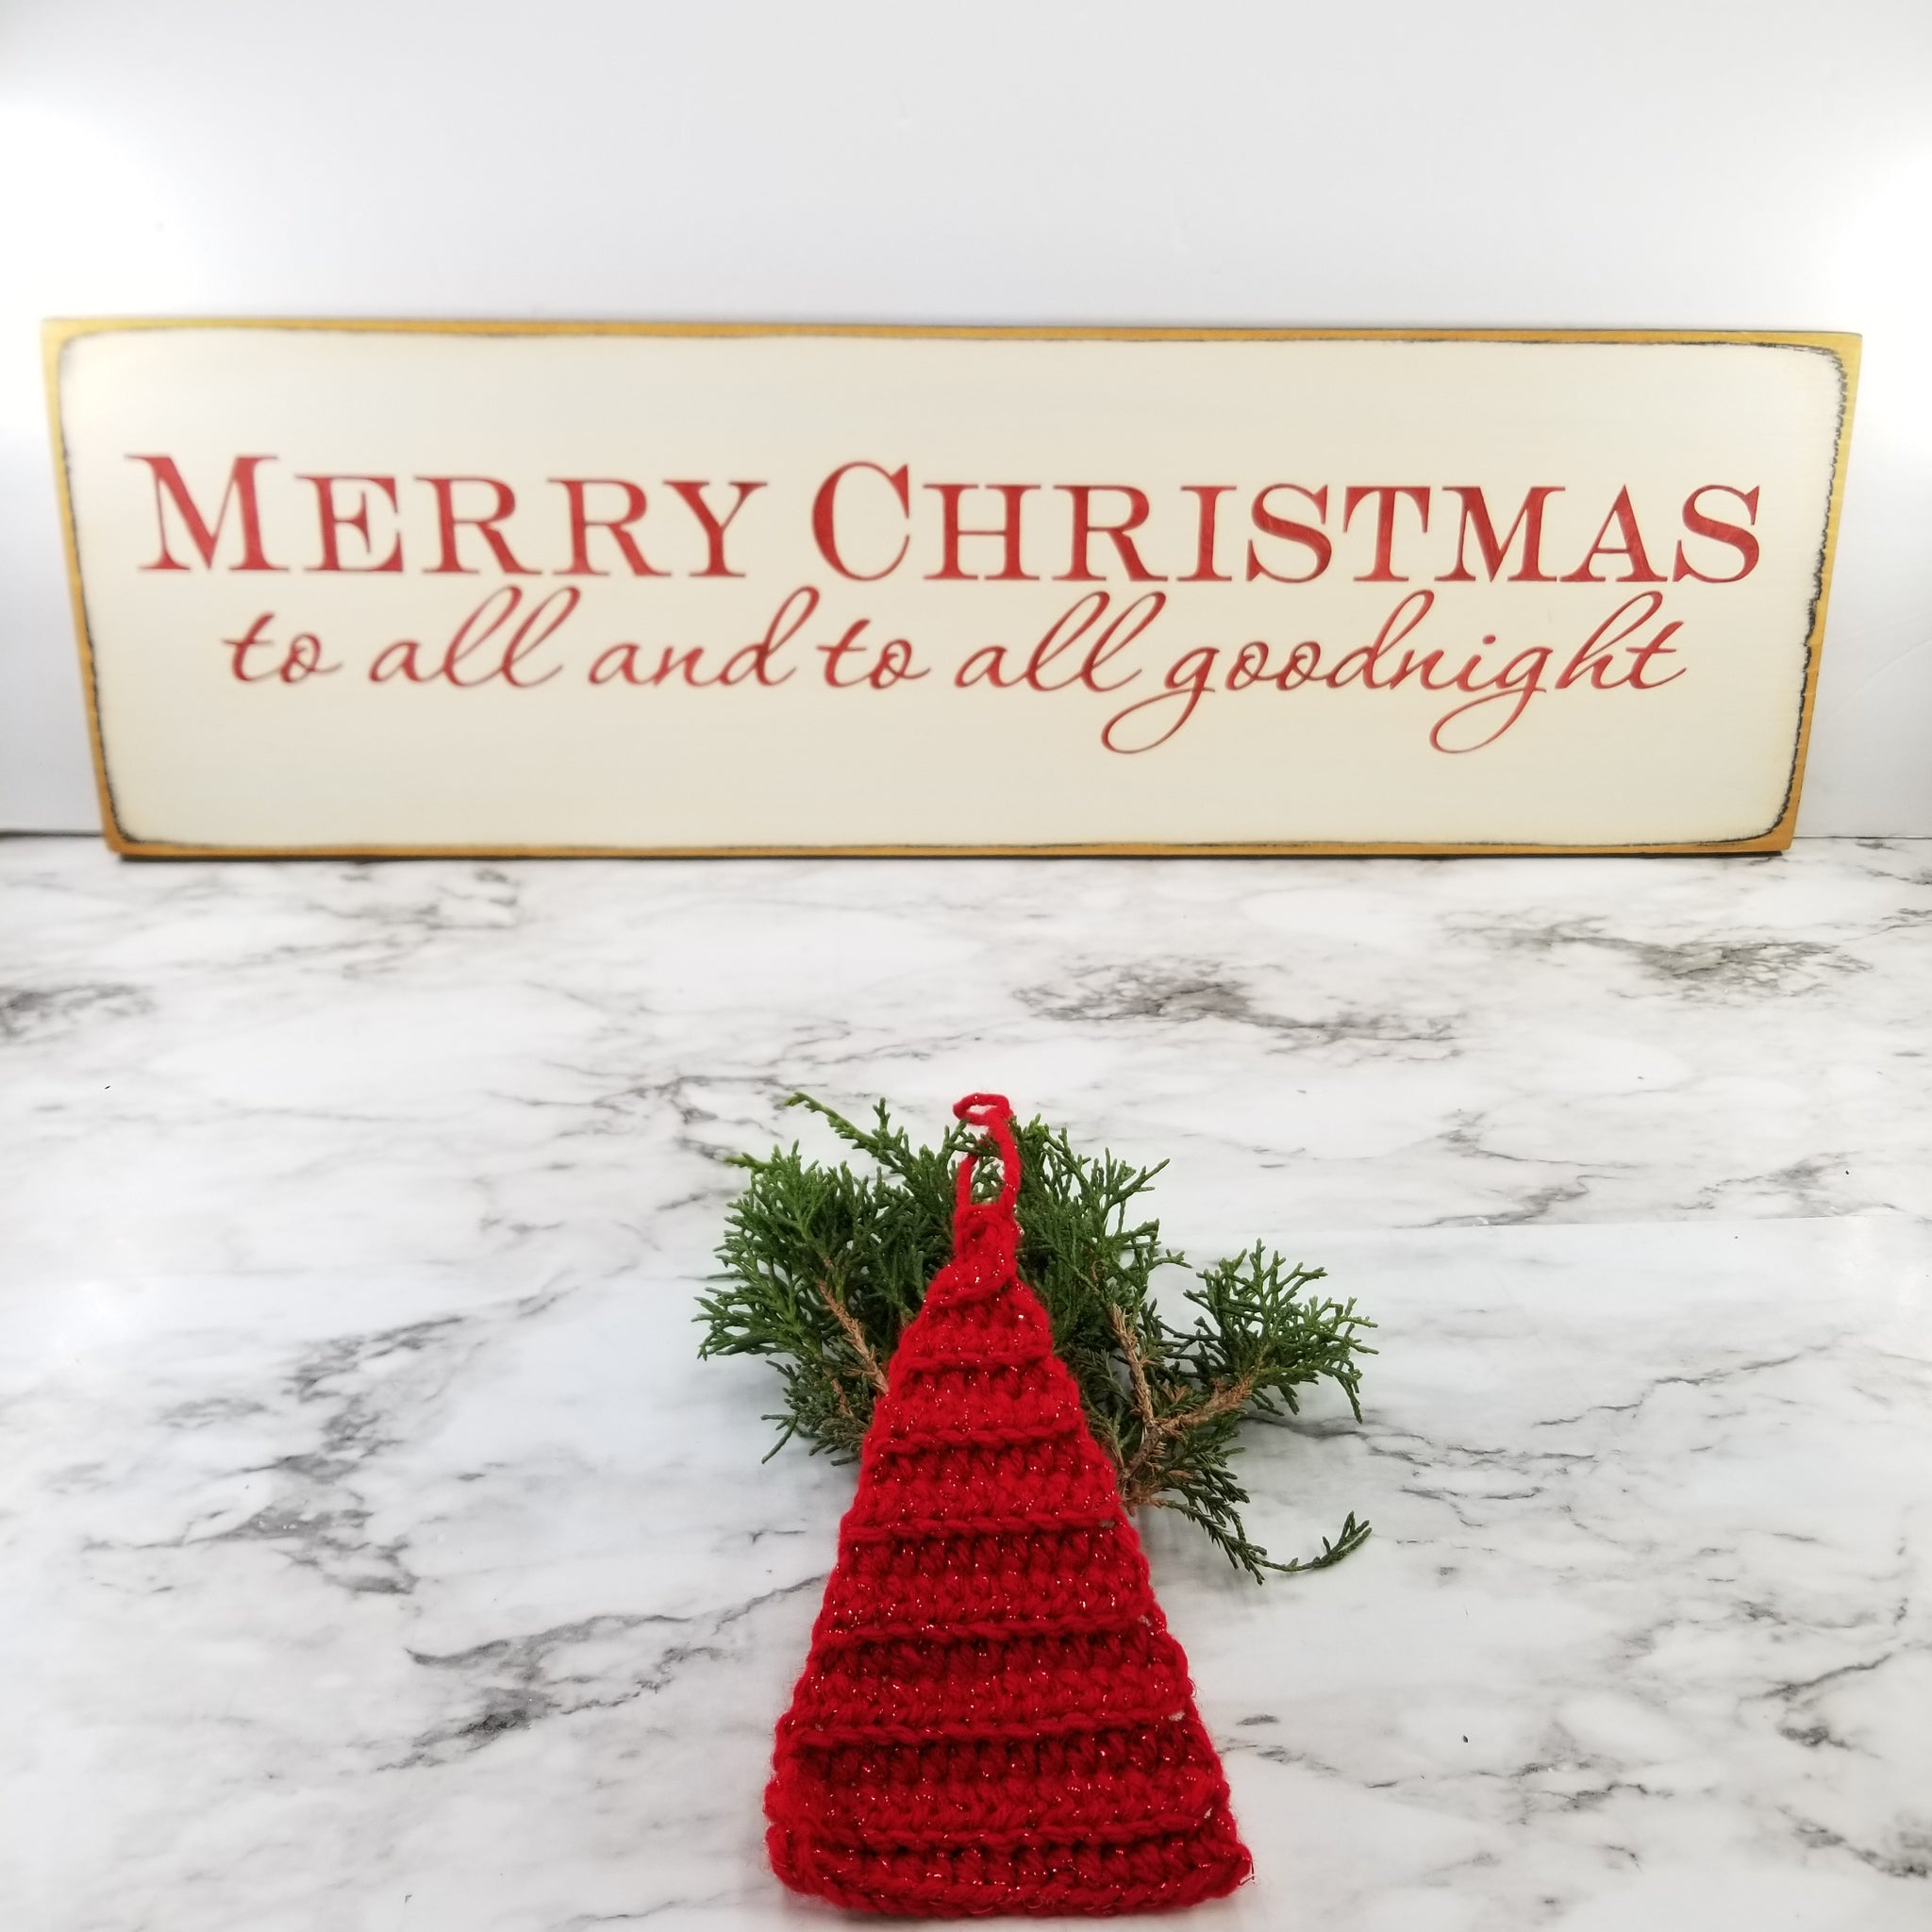 Merry Christmas wooden signs